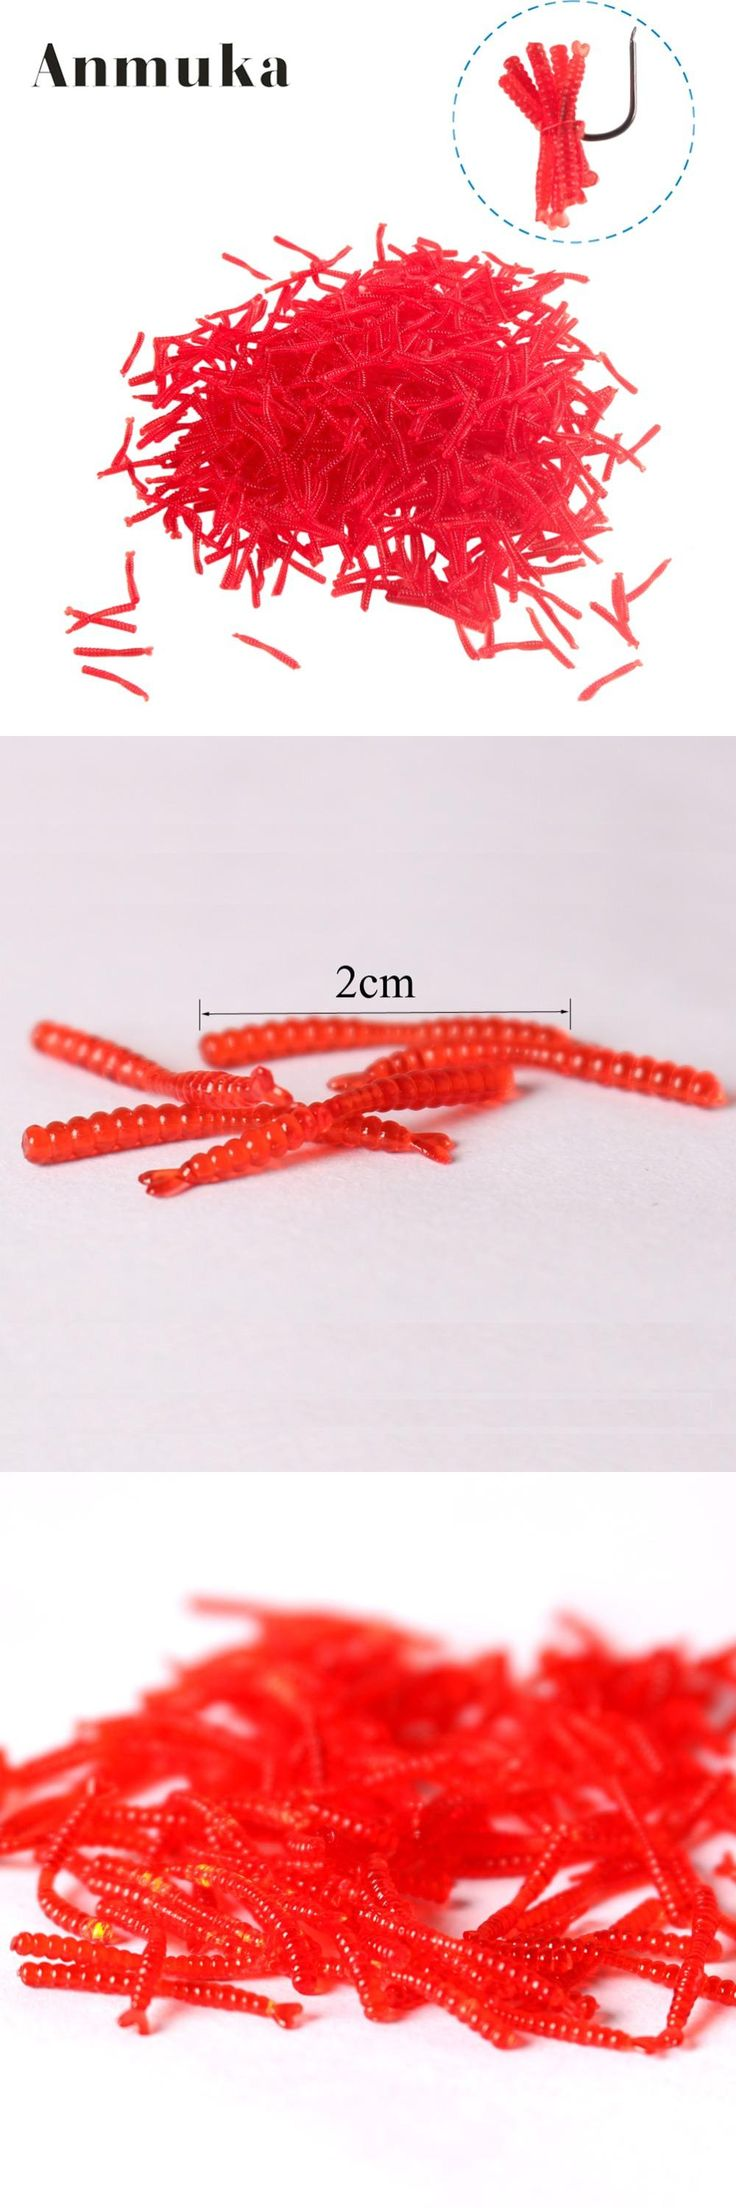 [Visit to Buy] Anmuka hot-selling 200pcs Smell red worm lures 2cm soft bait carp fishing lure set artificial fishing tackle FREESHIPPING #Advertisement